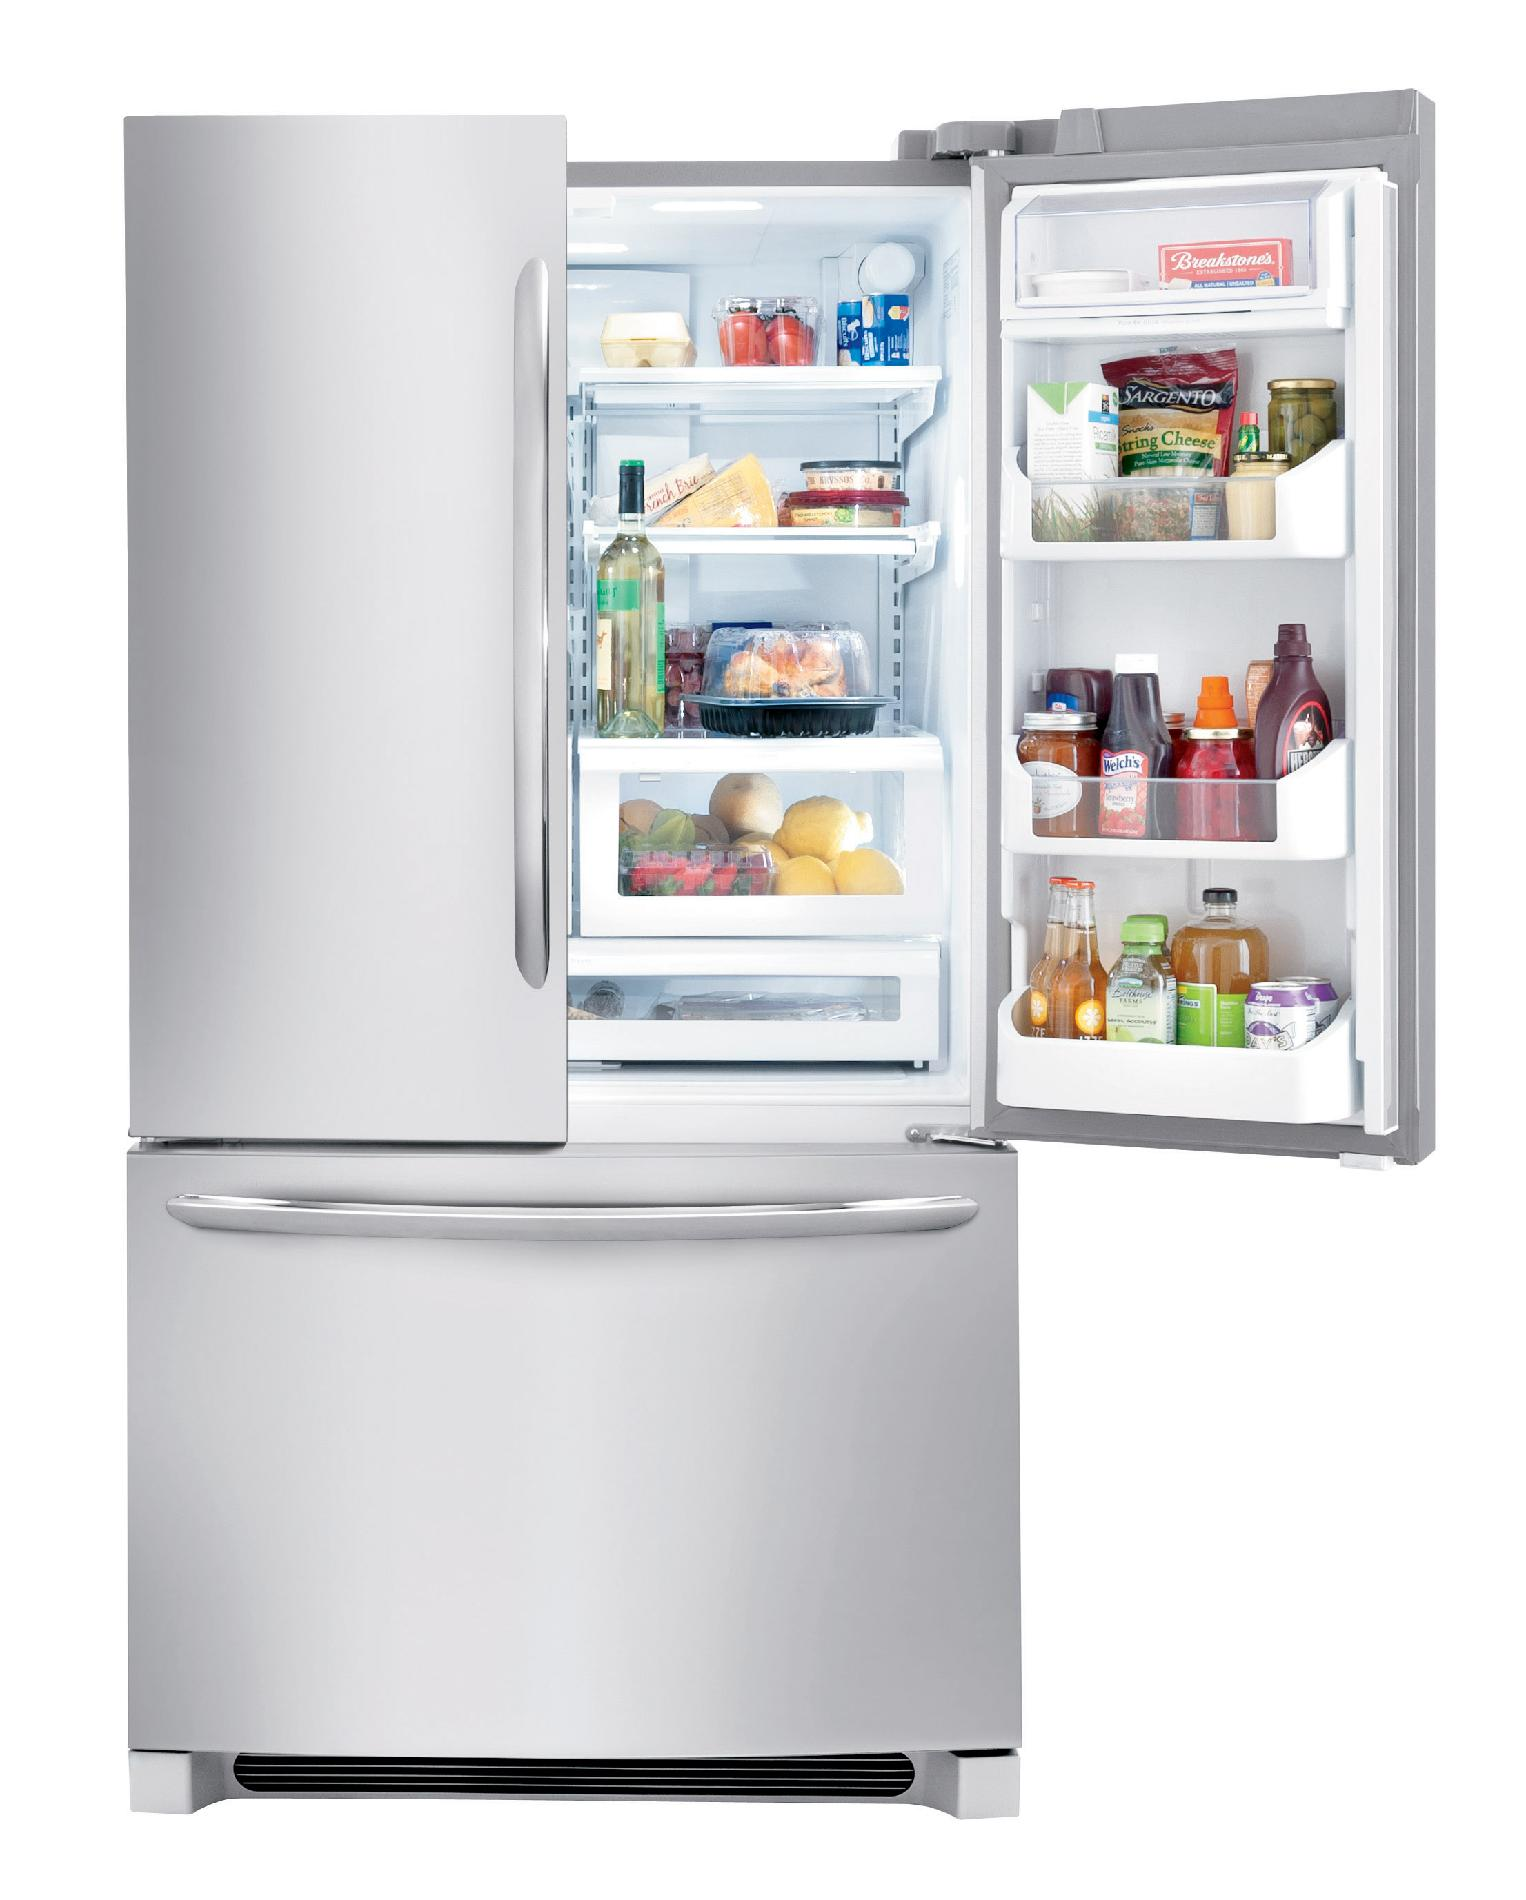 Frigidaire Gallery Gallery 27.8 cu. ft. French Door Refrigerator - Stainless Steel